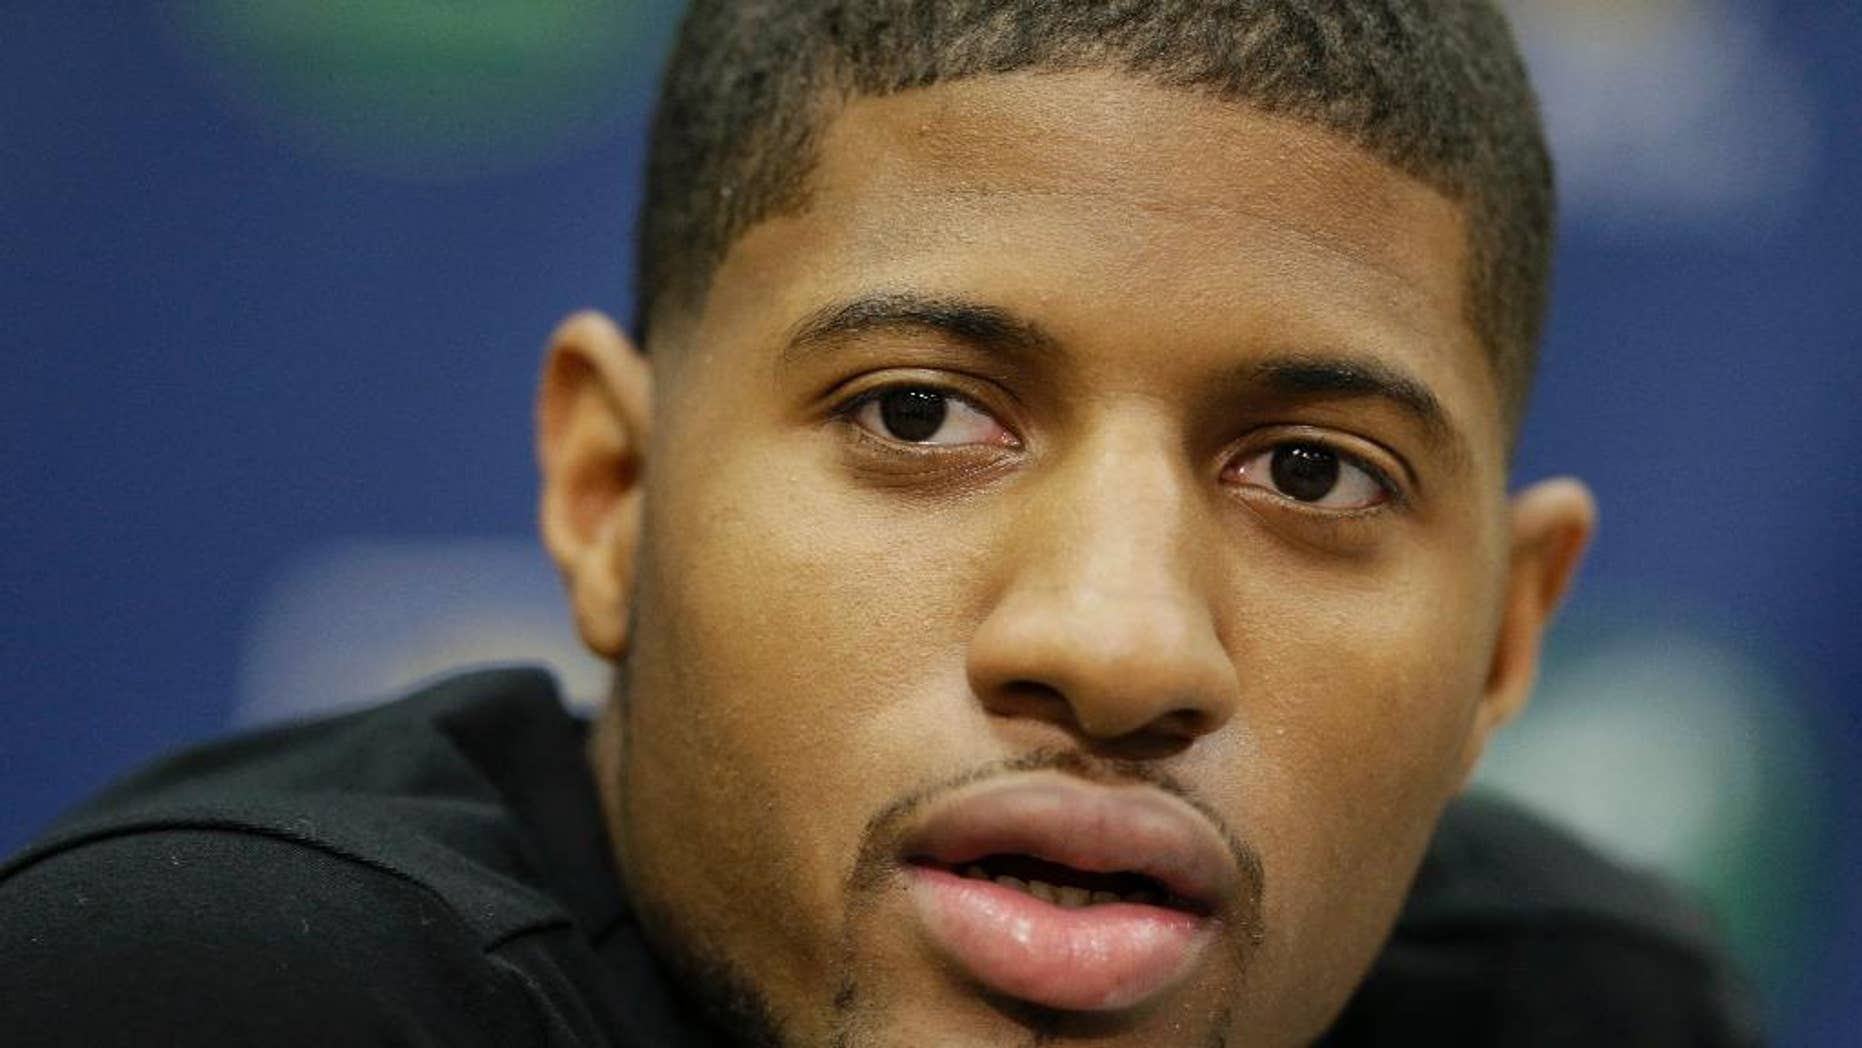 FILE - In this Aug. 15, 2014, file photo, Indiana Pacers' Paul George responds to a question during a news conference in Indianapolis. Paul George defended Ray Rice on Twitter, Thursday, Sept. 11, 2014, then backtracked less than an hour later by deleting the posts and apologizing to women and victims of domestic violence. (AP Photo/Darron Cummings, File)